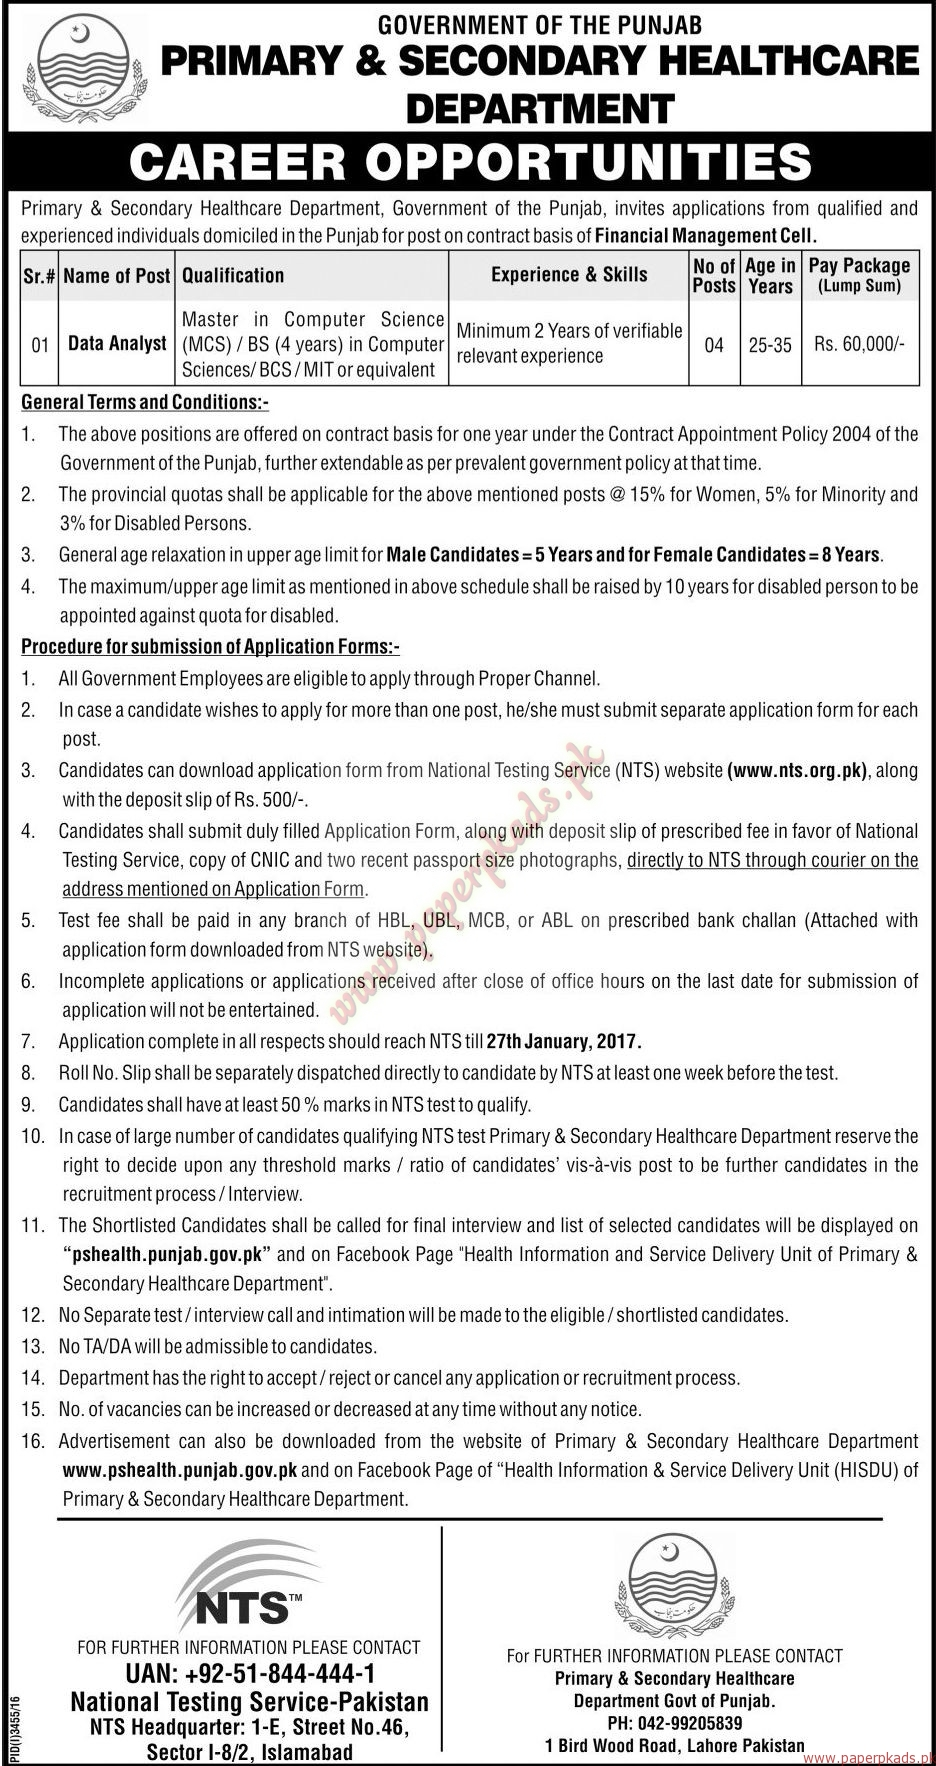 Government of the Punjab - Primary & Secondary HealthCare Department Jobs 3